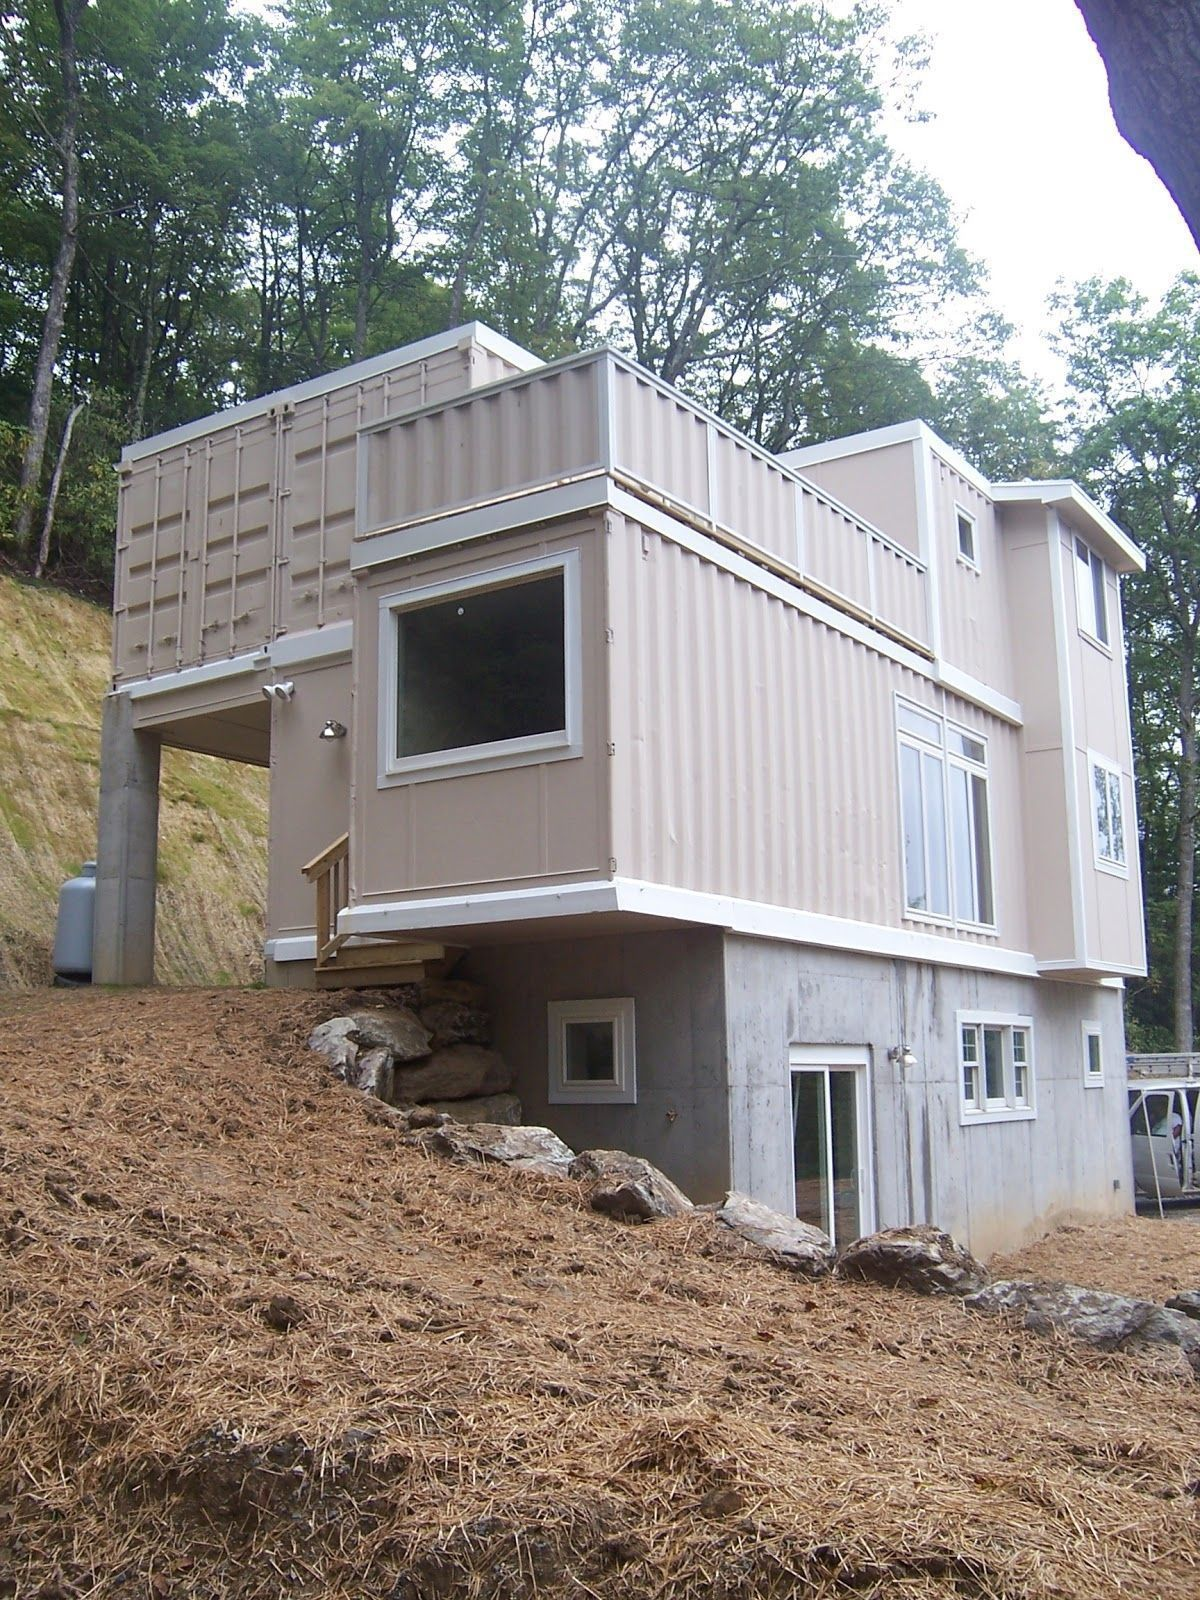 Modern Shipping Container Homes In Shipping Container Home Design Software Artistic S Building A Container Home Shipping Container Home Designs Container House